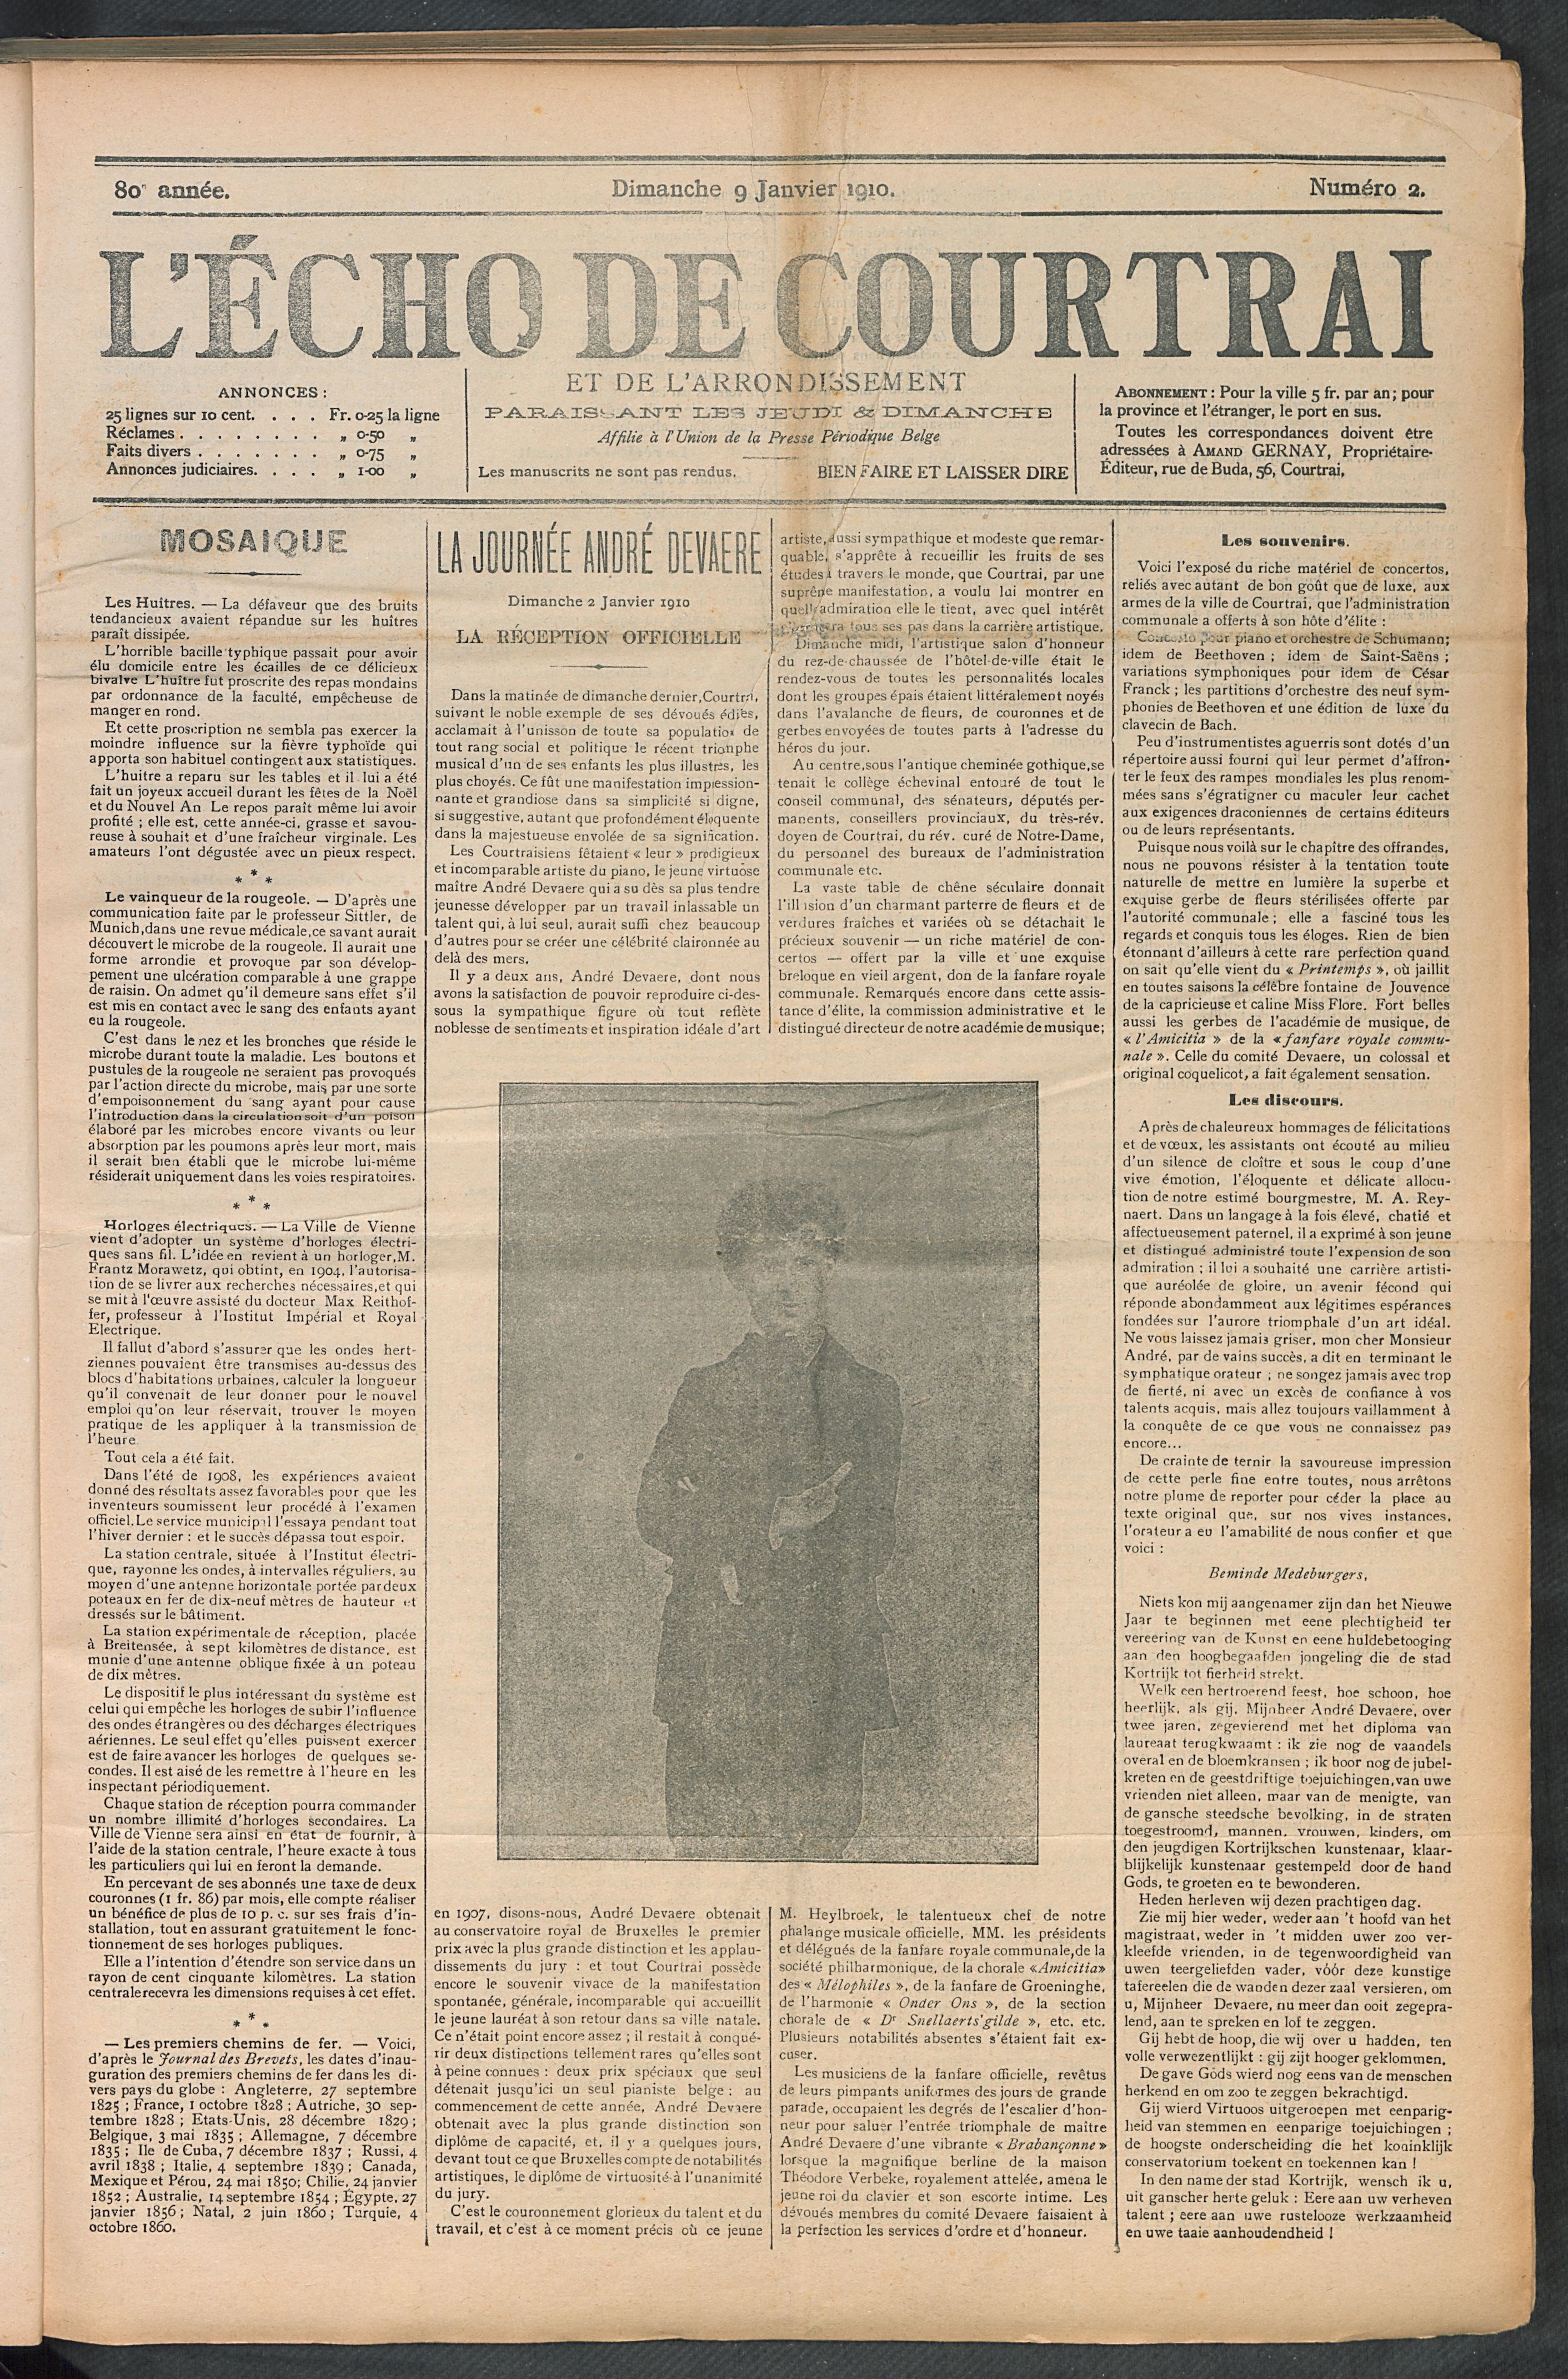 L'echo De Courtrai 1910-01-09 p1